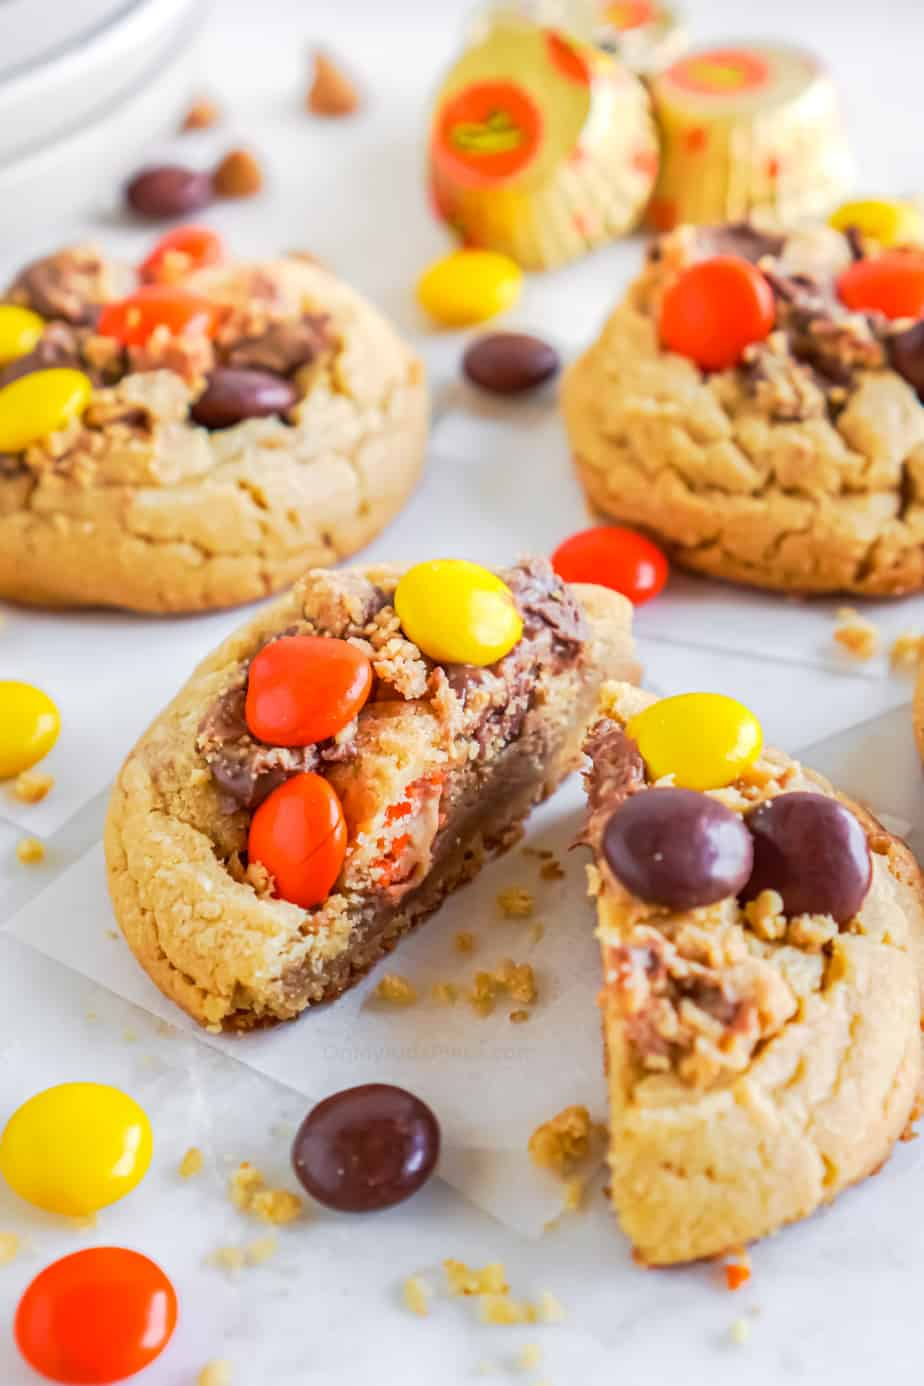 Cookie slices in half to see the inside up close covered in peanut butter candies and pieces of peanut butter cups